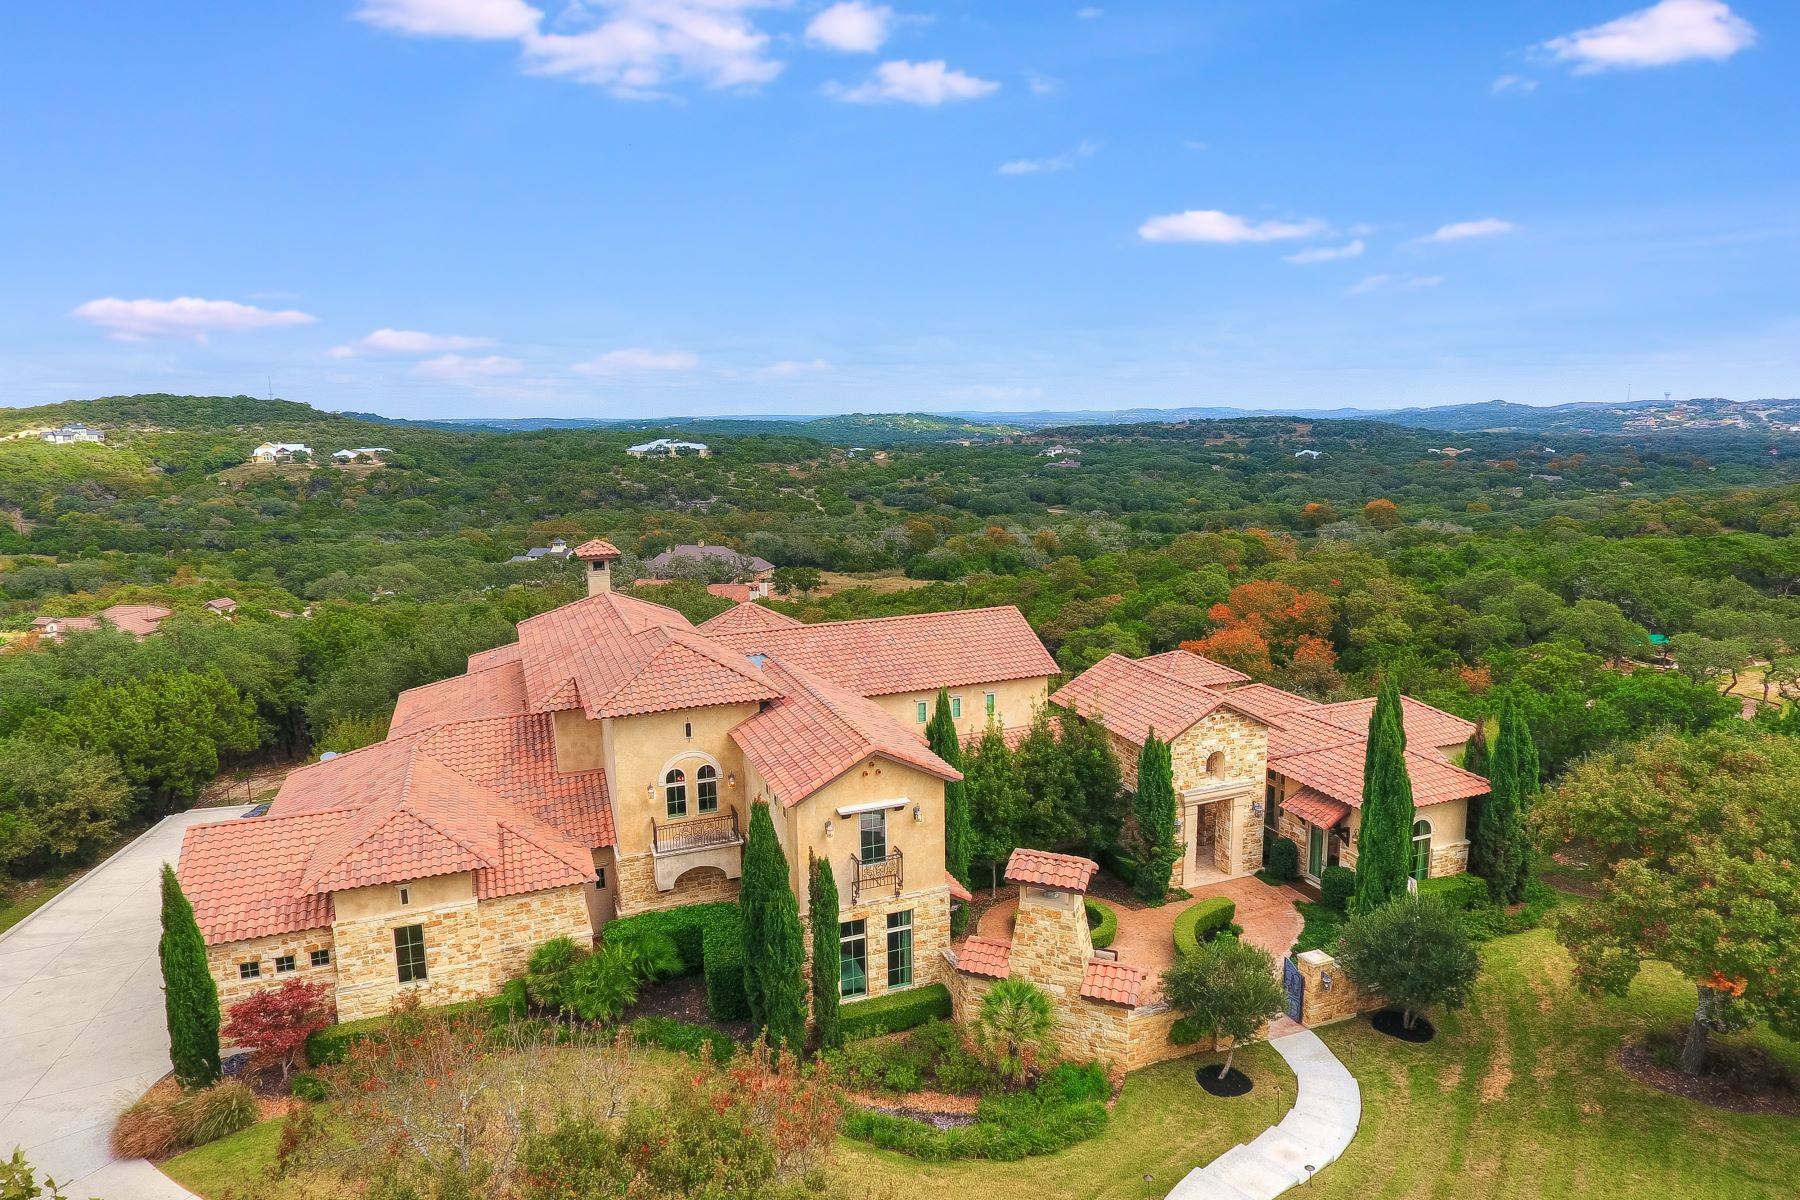 Single Family Homes for Active at Majestic Views in Exclusive Anaqua Springs 24818 Caliza Terrace Boerne, Texas 78006 United States